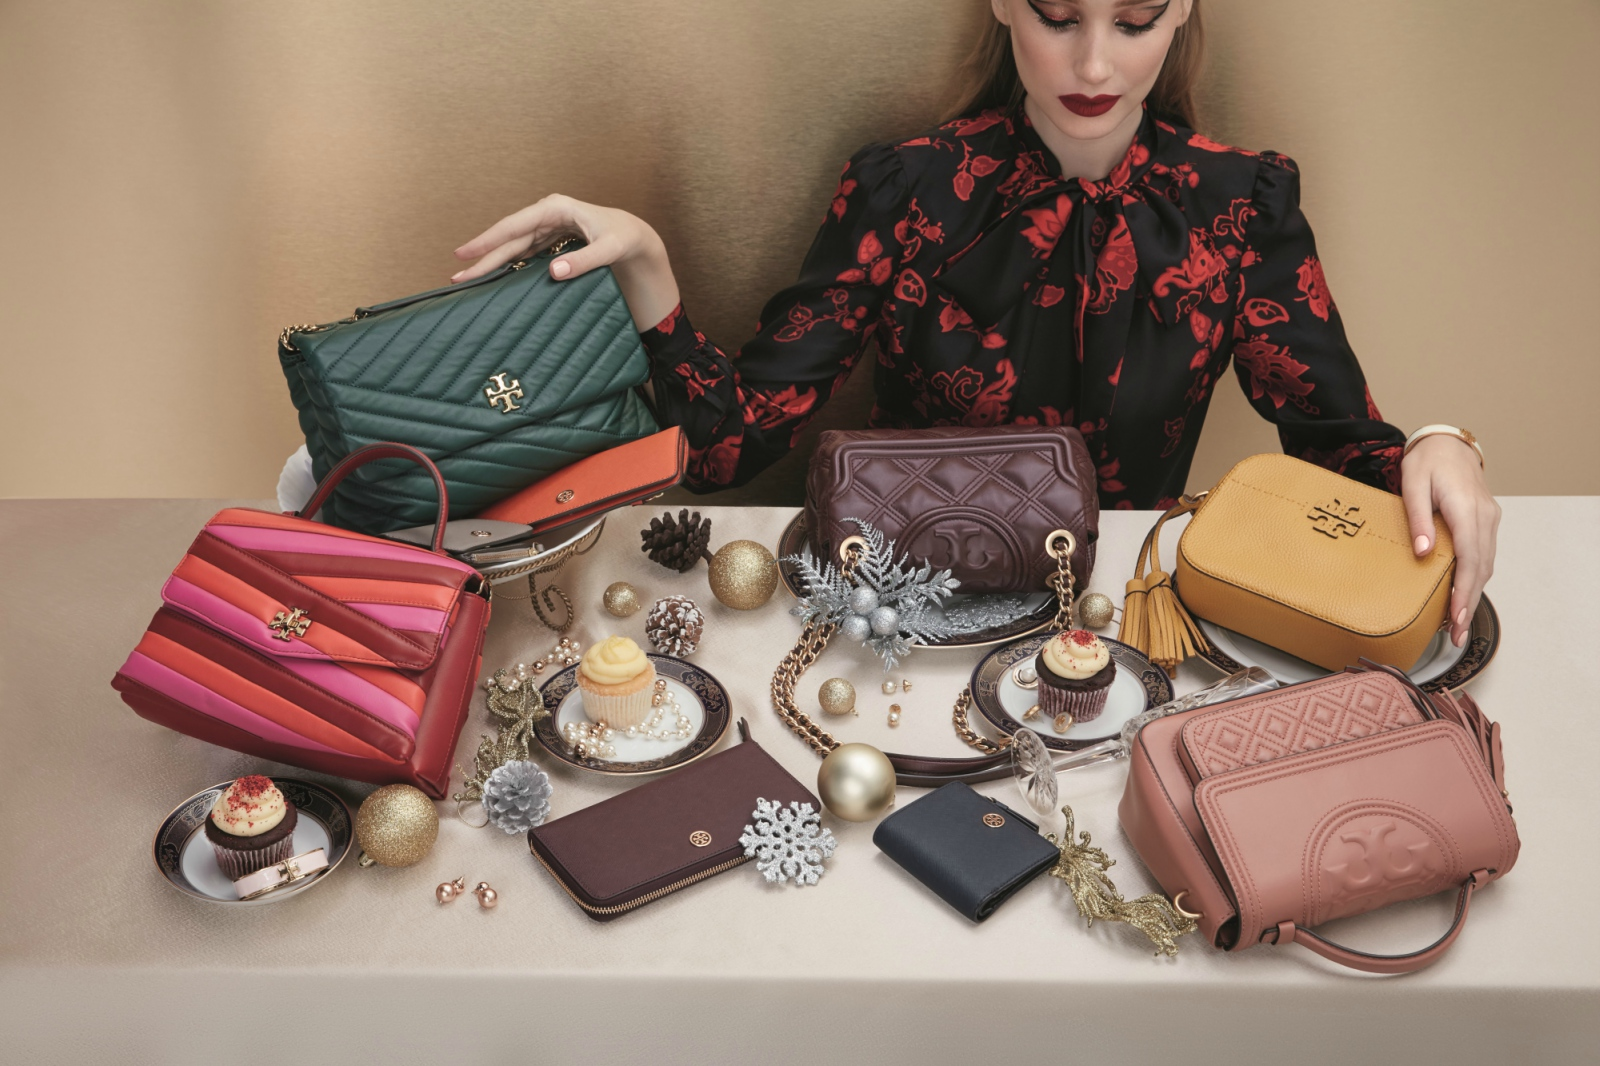 Tory Burch Presents: Sweet Temptations